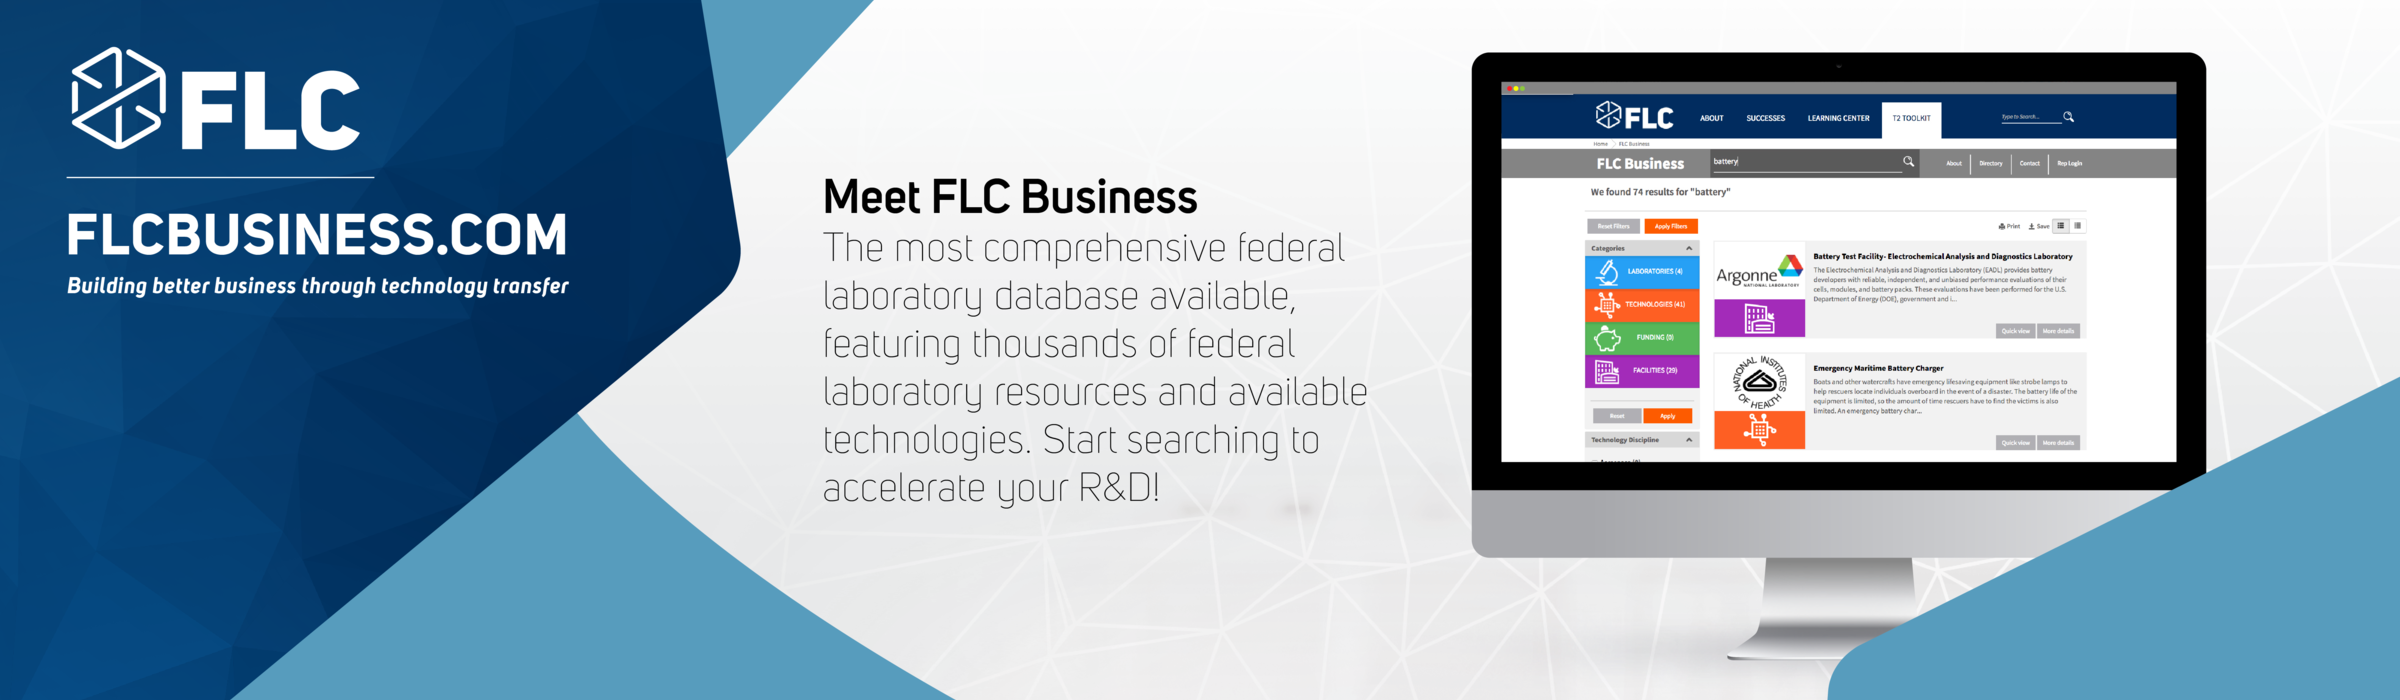 Meet FLC Business